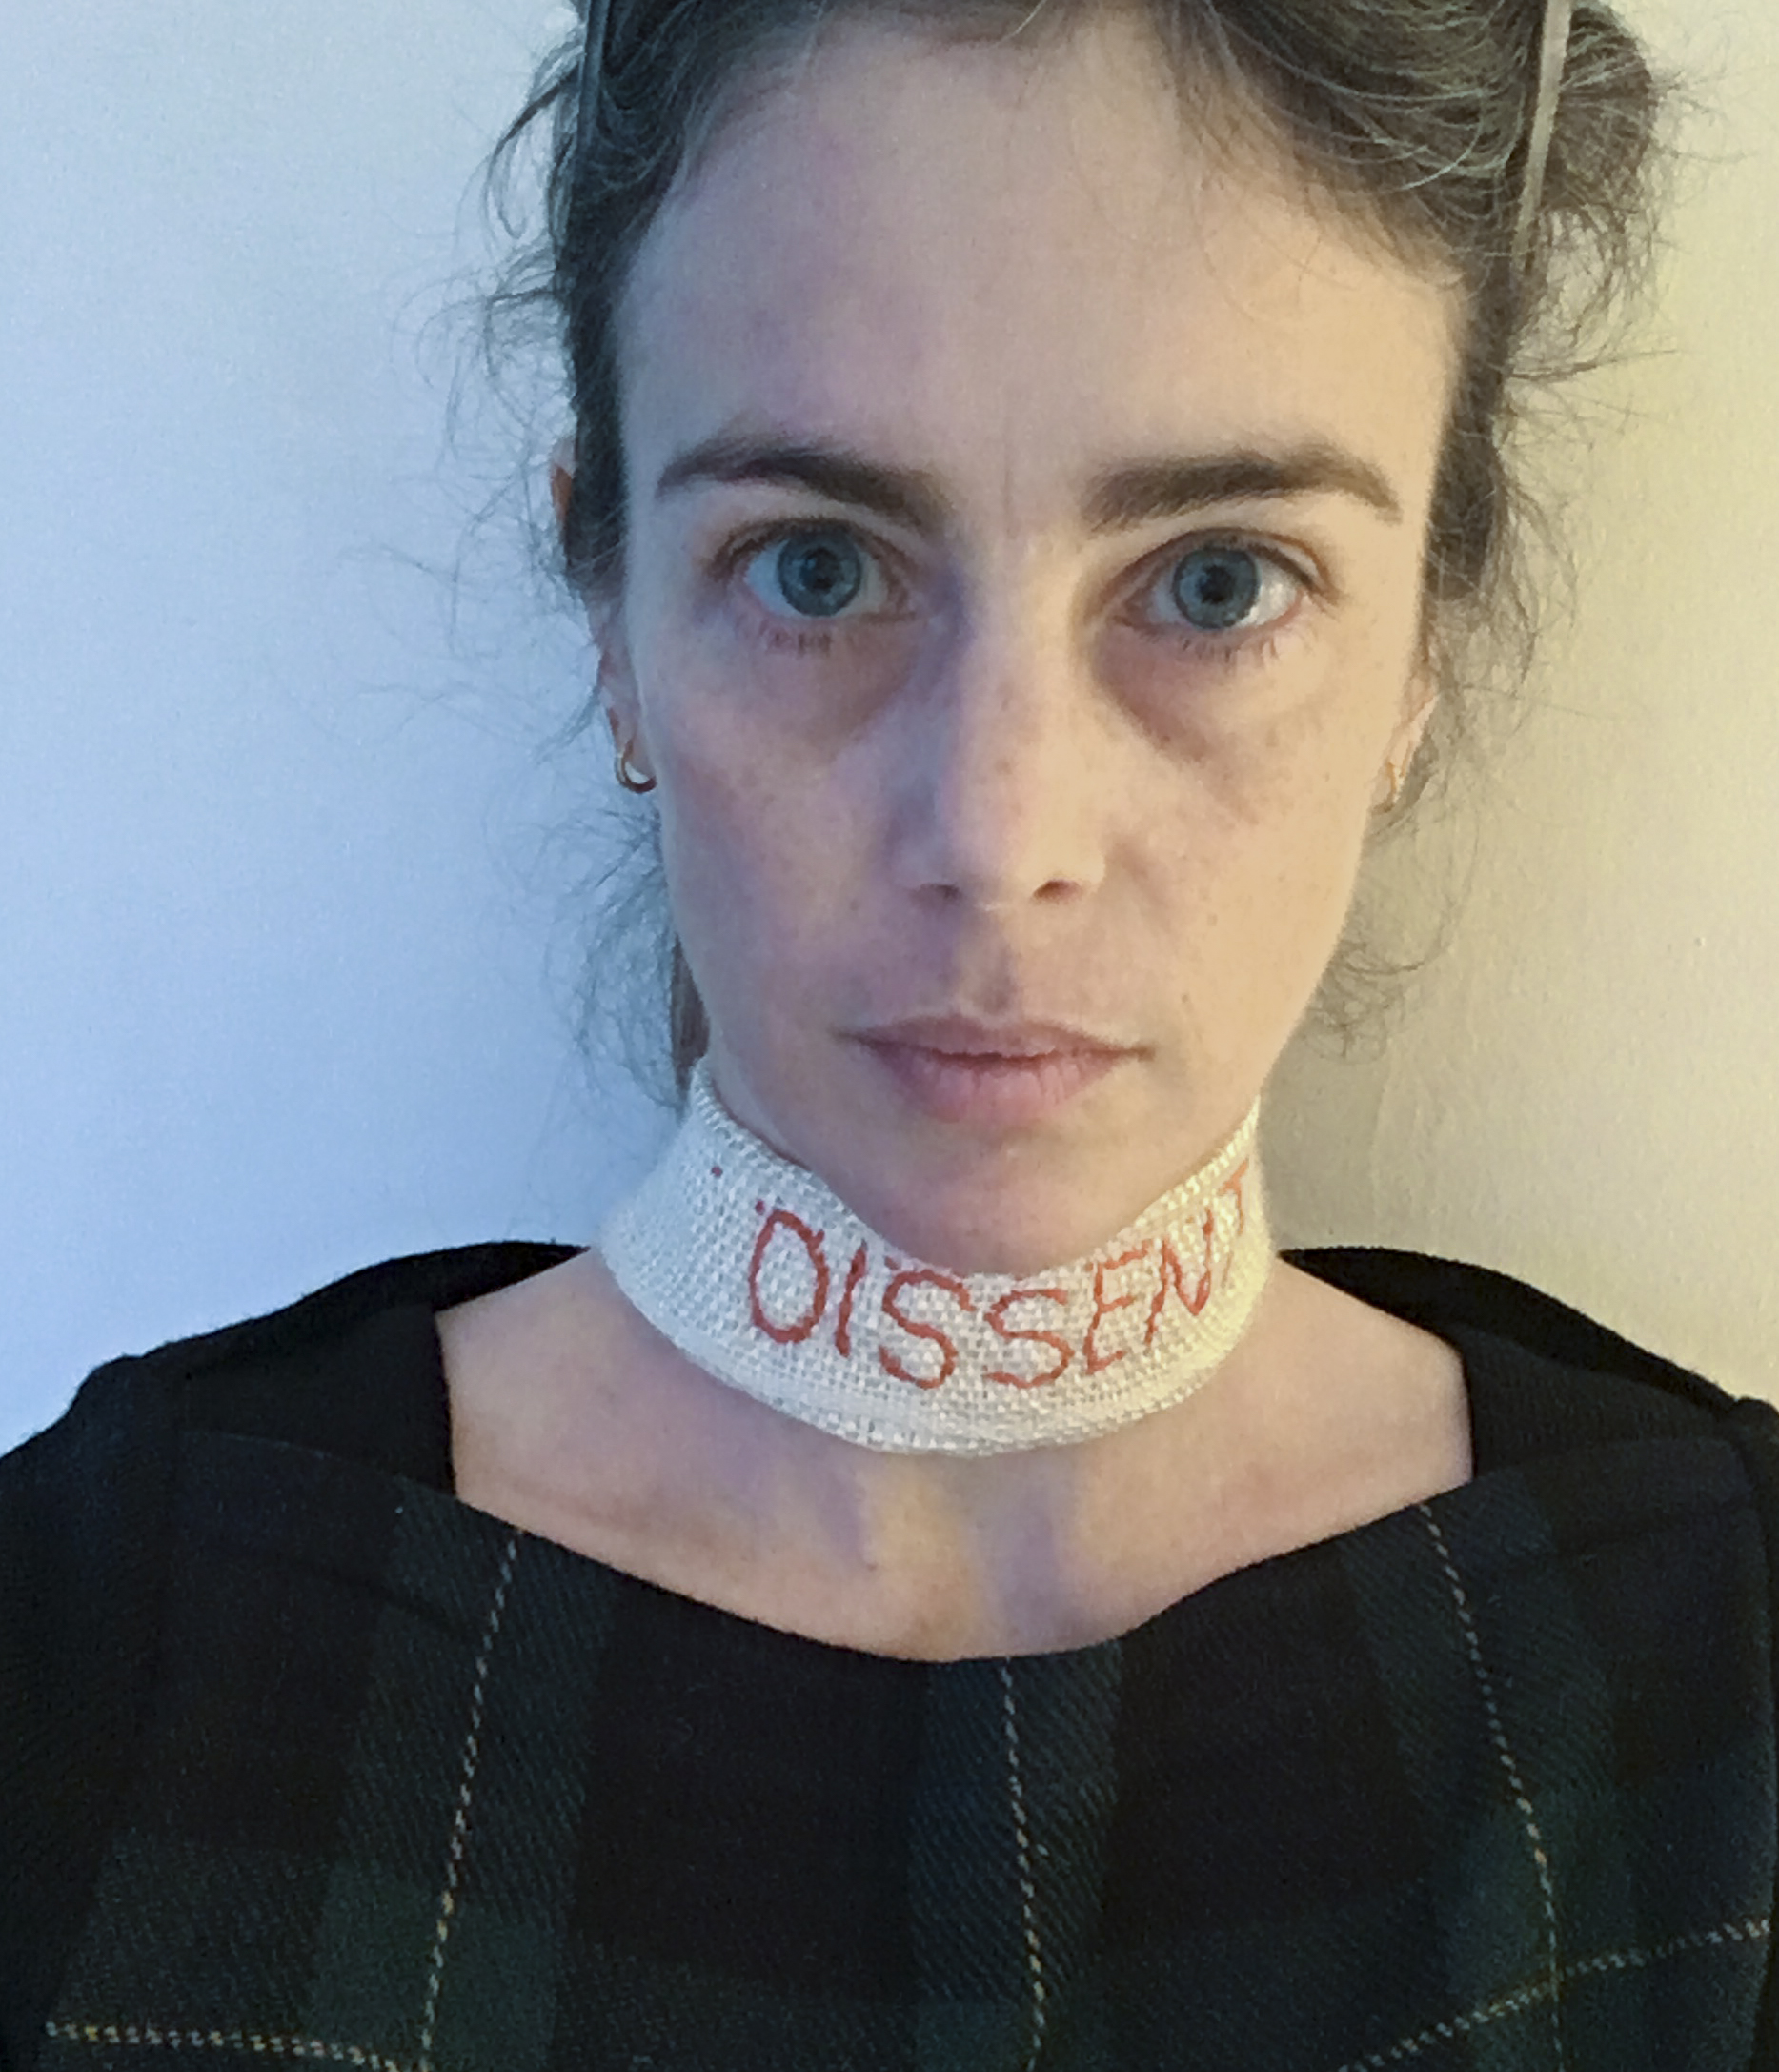 Dissent Collar #13 (made for the Women's March in Washington, D.C., 1/21/17) /Hand-woven silk and wool fabric, embroidery thread, safety pin